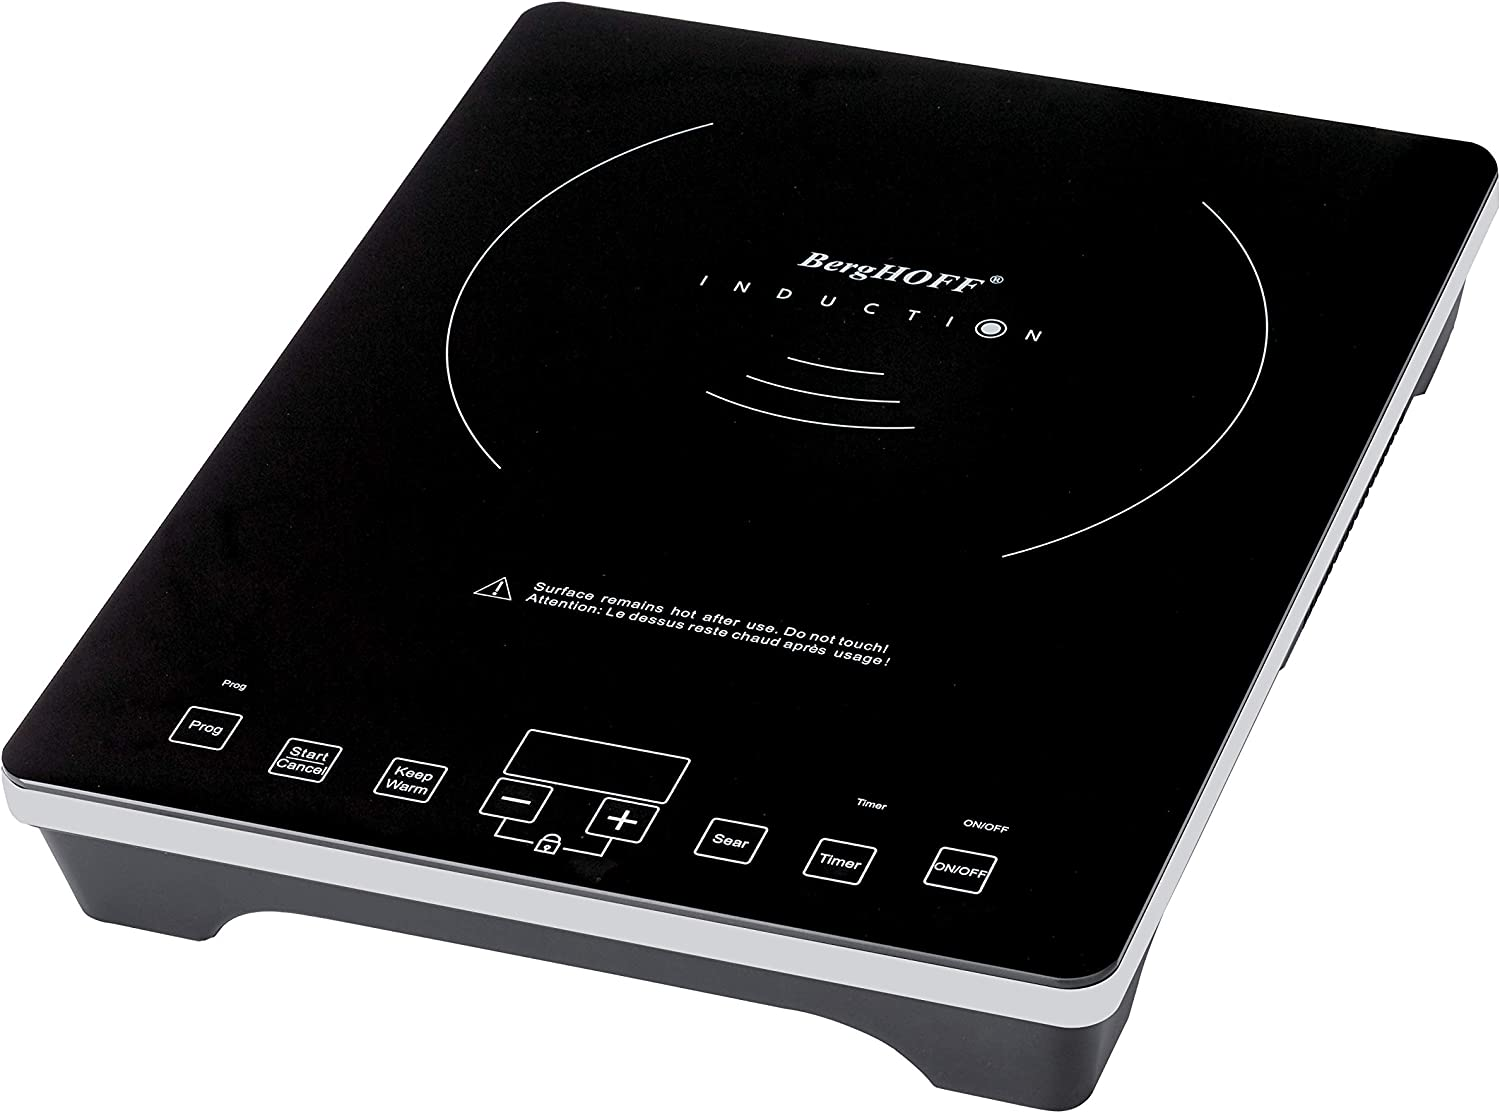 BergHOFF New Model 1800 Watt Portable Touch Screen Induction Cooktop Stove, Single Countertop Burner